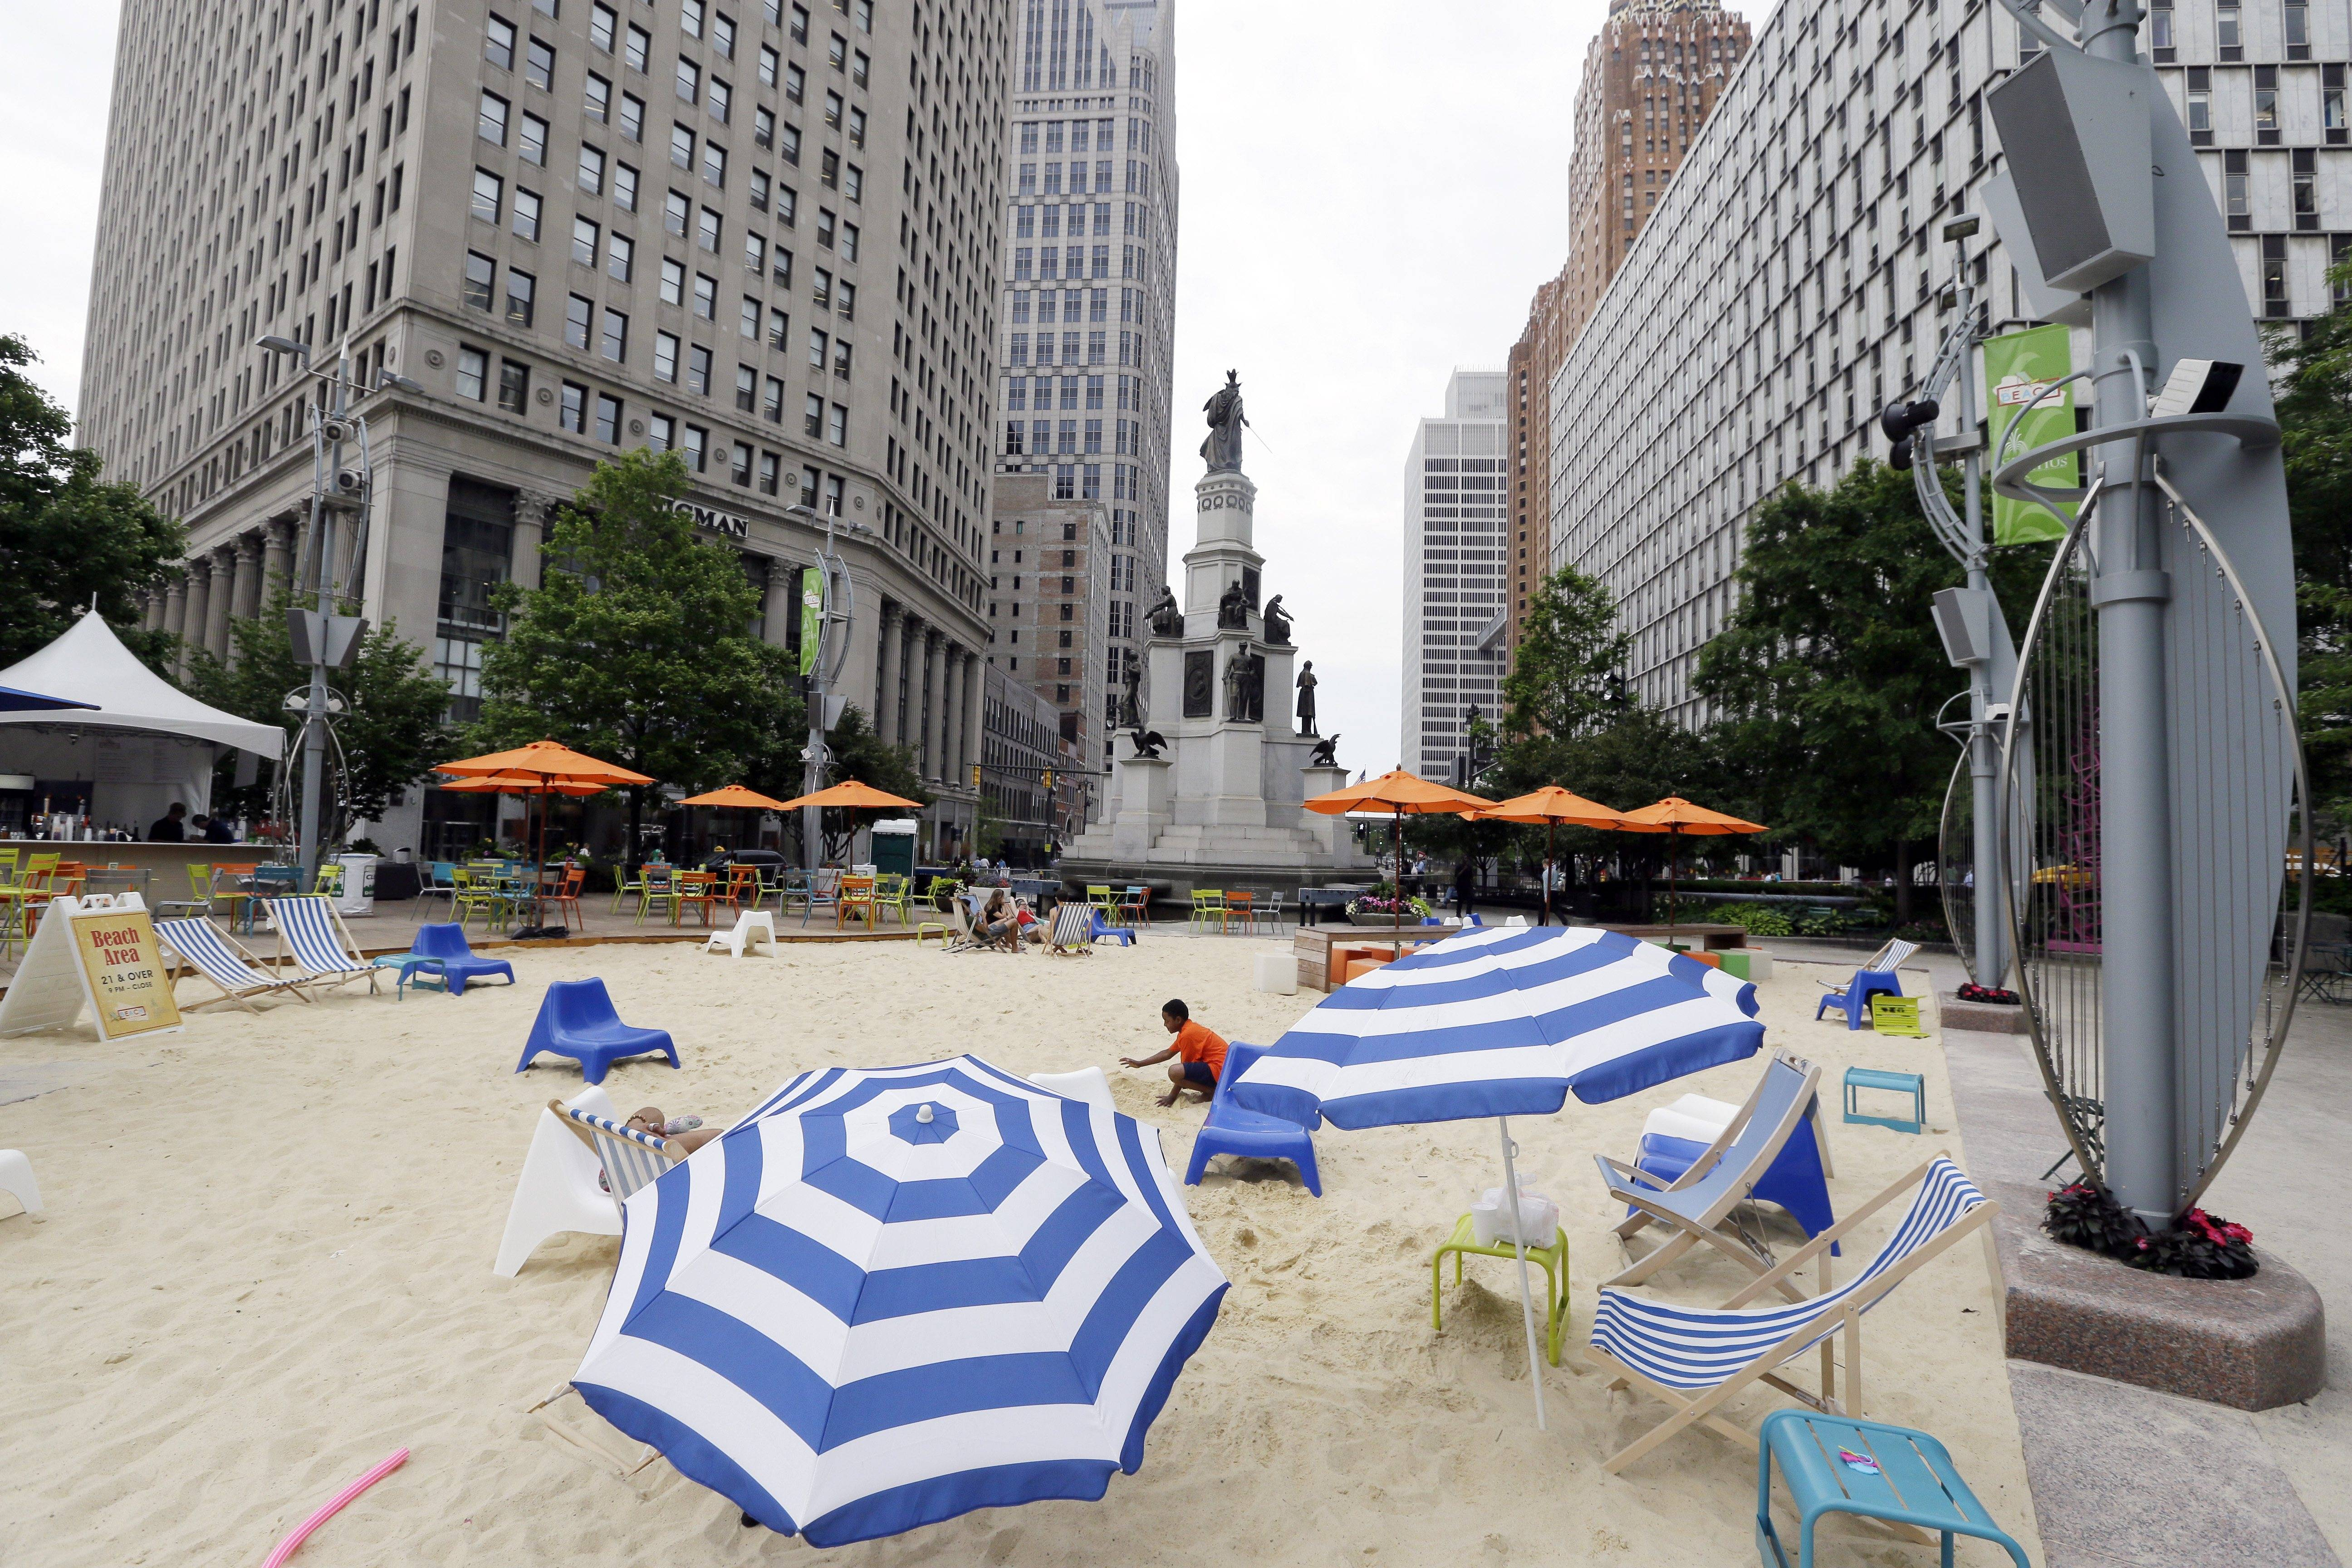 A beach scene is part of Campus Martius in Detroit. Campus Martius is a 1.6-acre park where the historic Woodward and Michigan avenues converge.